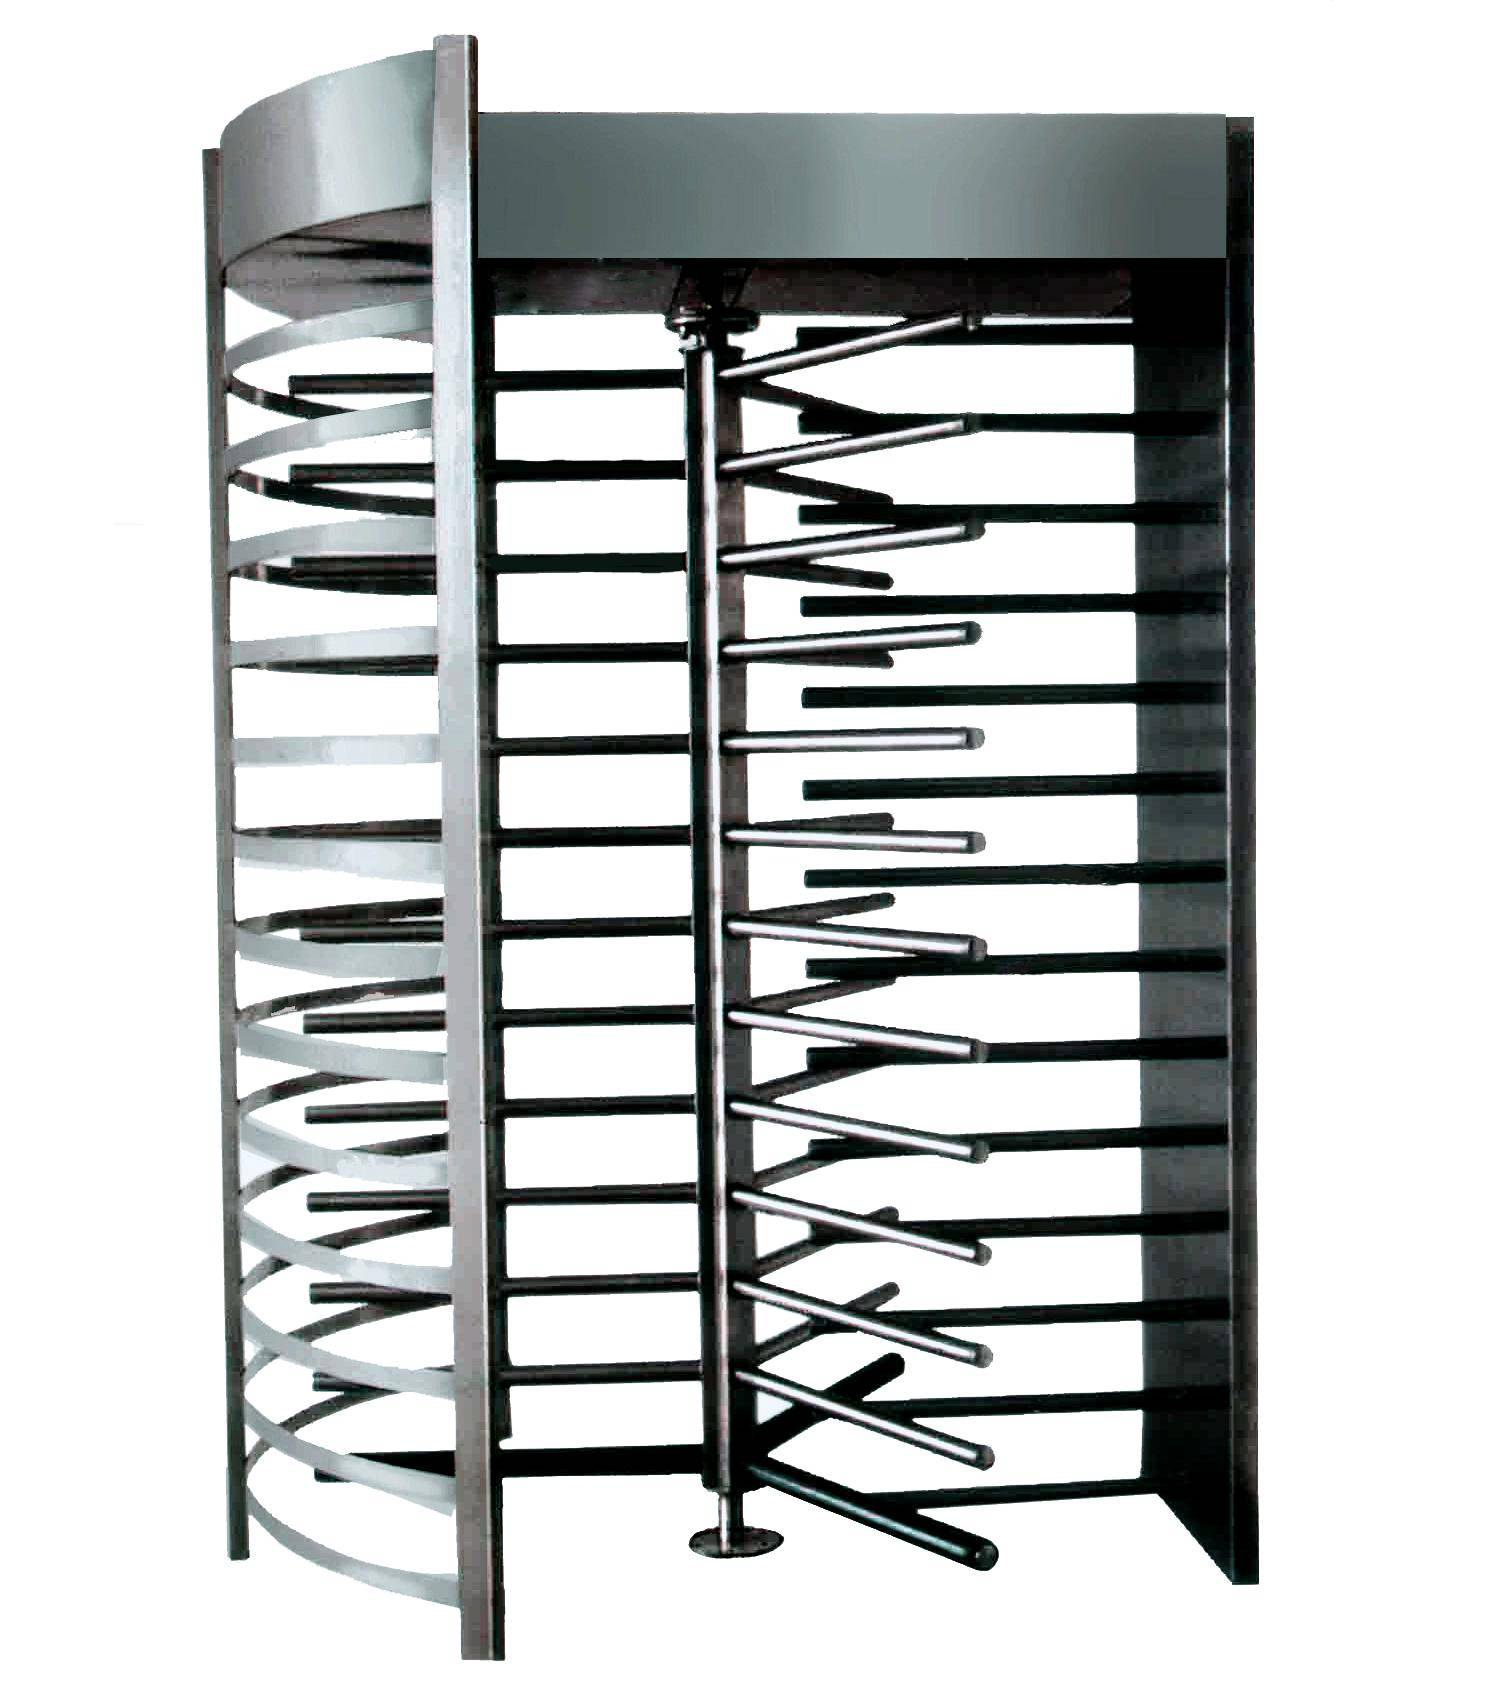 Full height security turnstile for prison usage